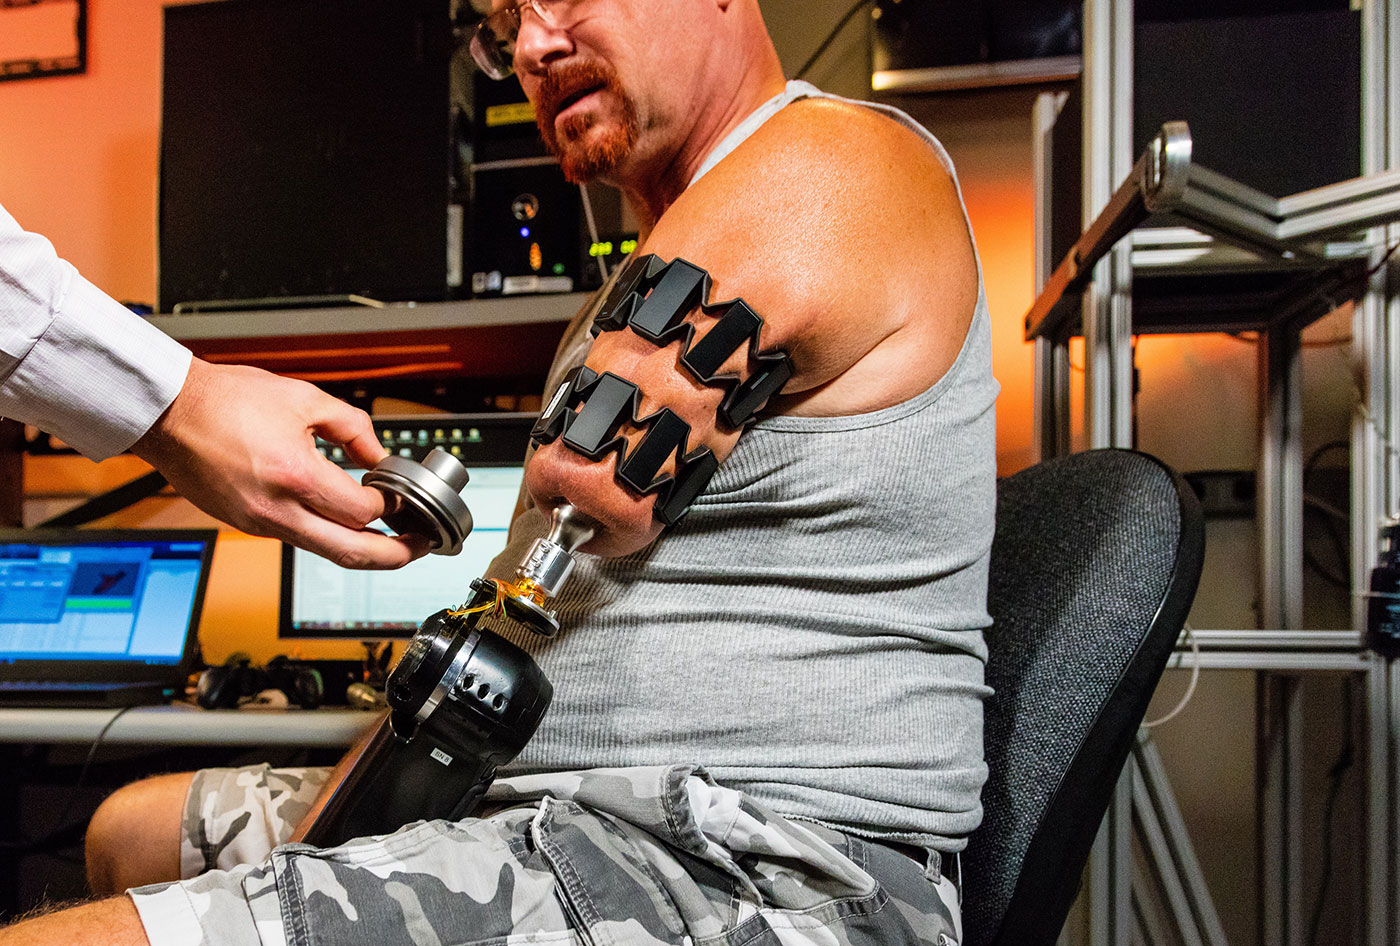 Researchers Use Myo Armbands To Control Prosthetic Arm